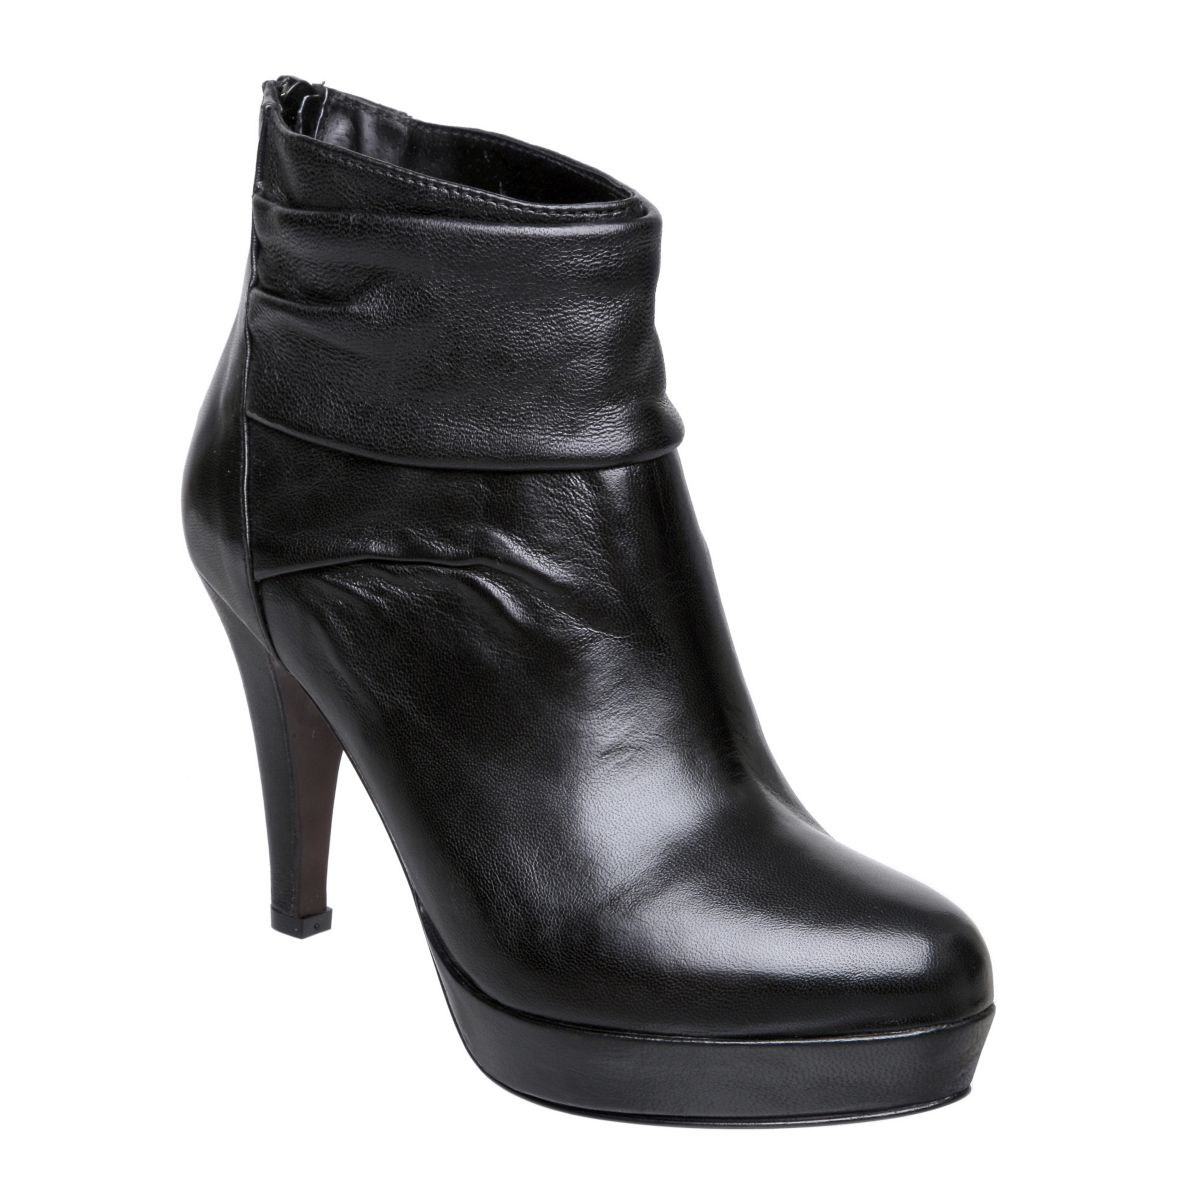 PIED-A-TERRE-SELENITE-BLACK-LEATHER-LADIES-HIGH-HEEL-WOMENS-ANKLE-BOOTS-SIZE-3-8